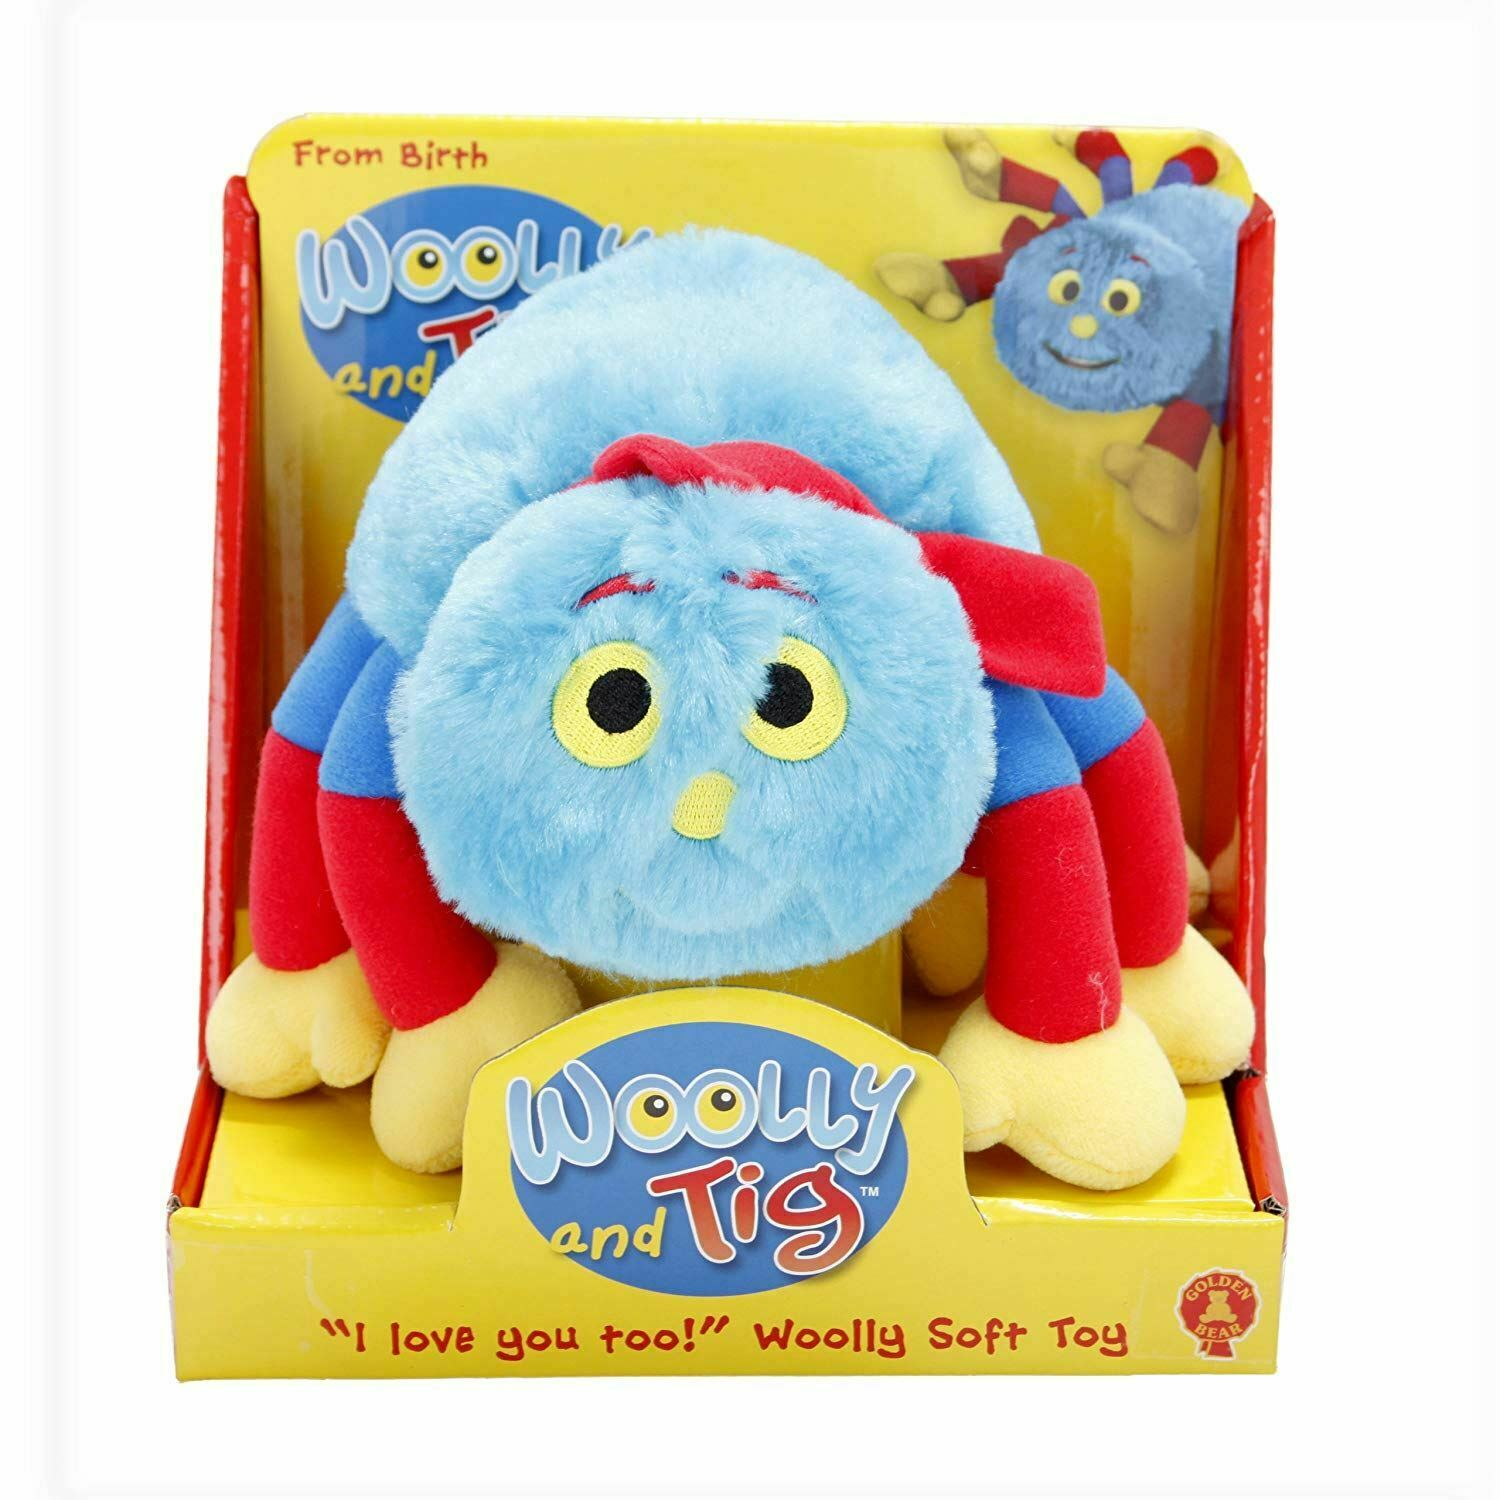 The new gift Woolly and Tig - Spider WOOLLY Plush SOFT TOY 14